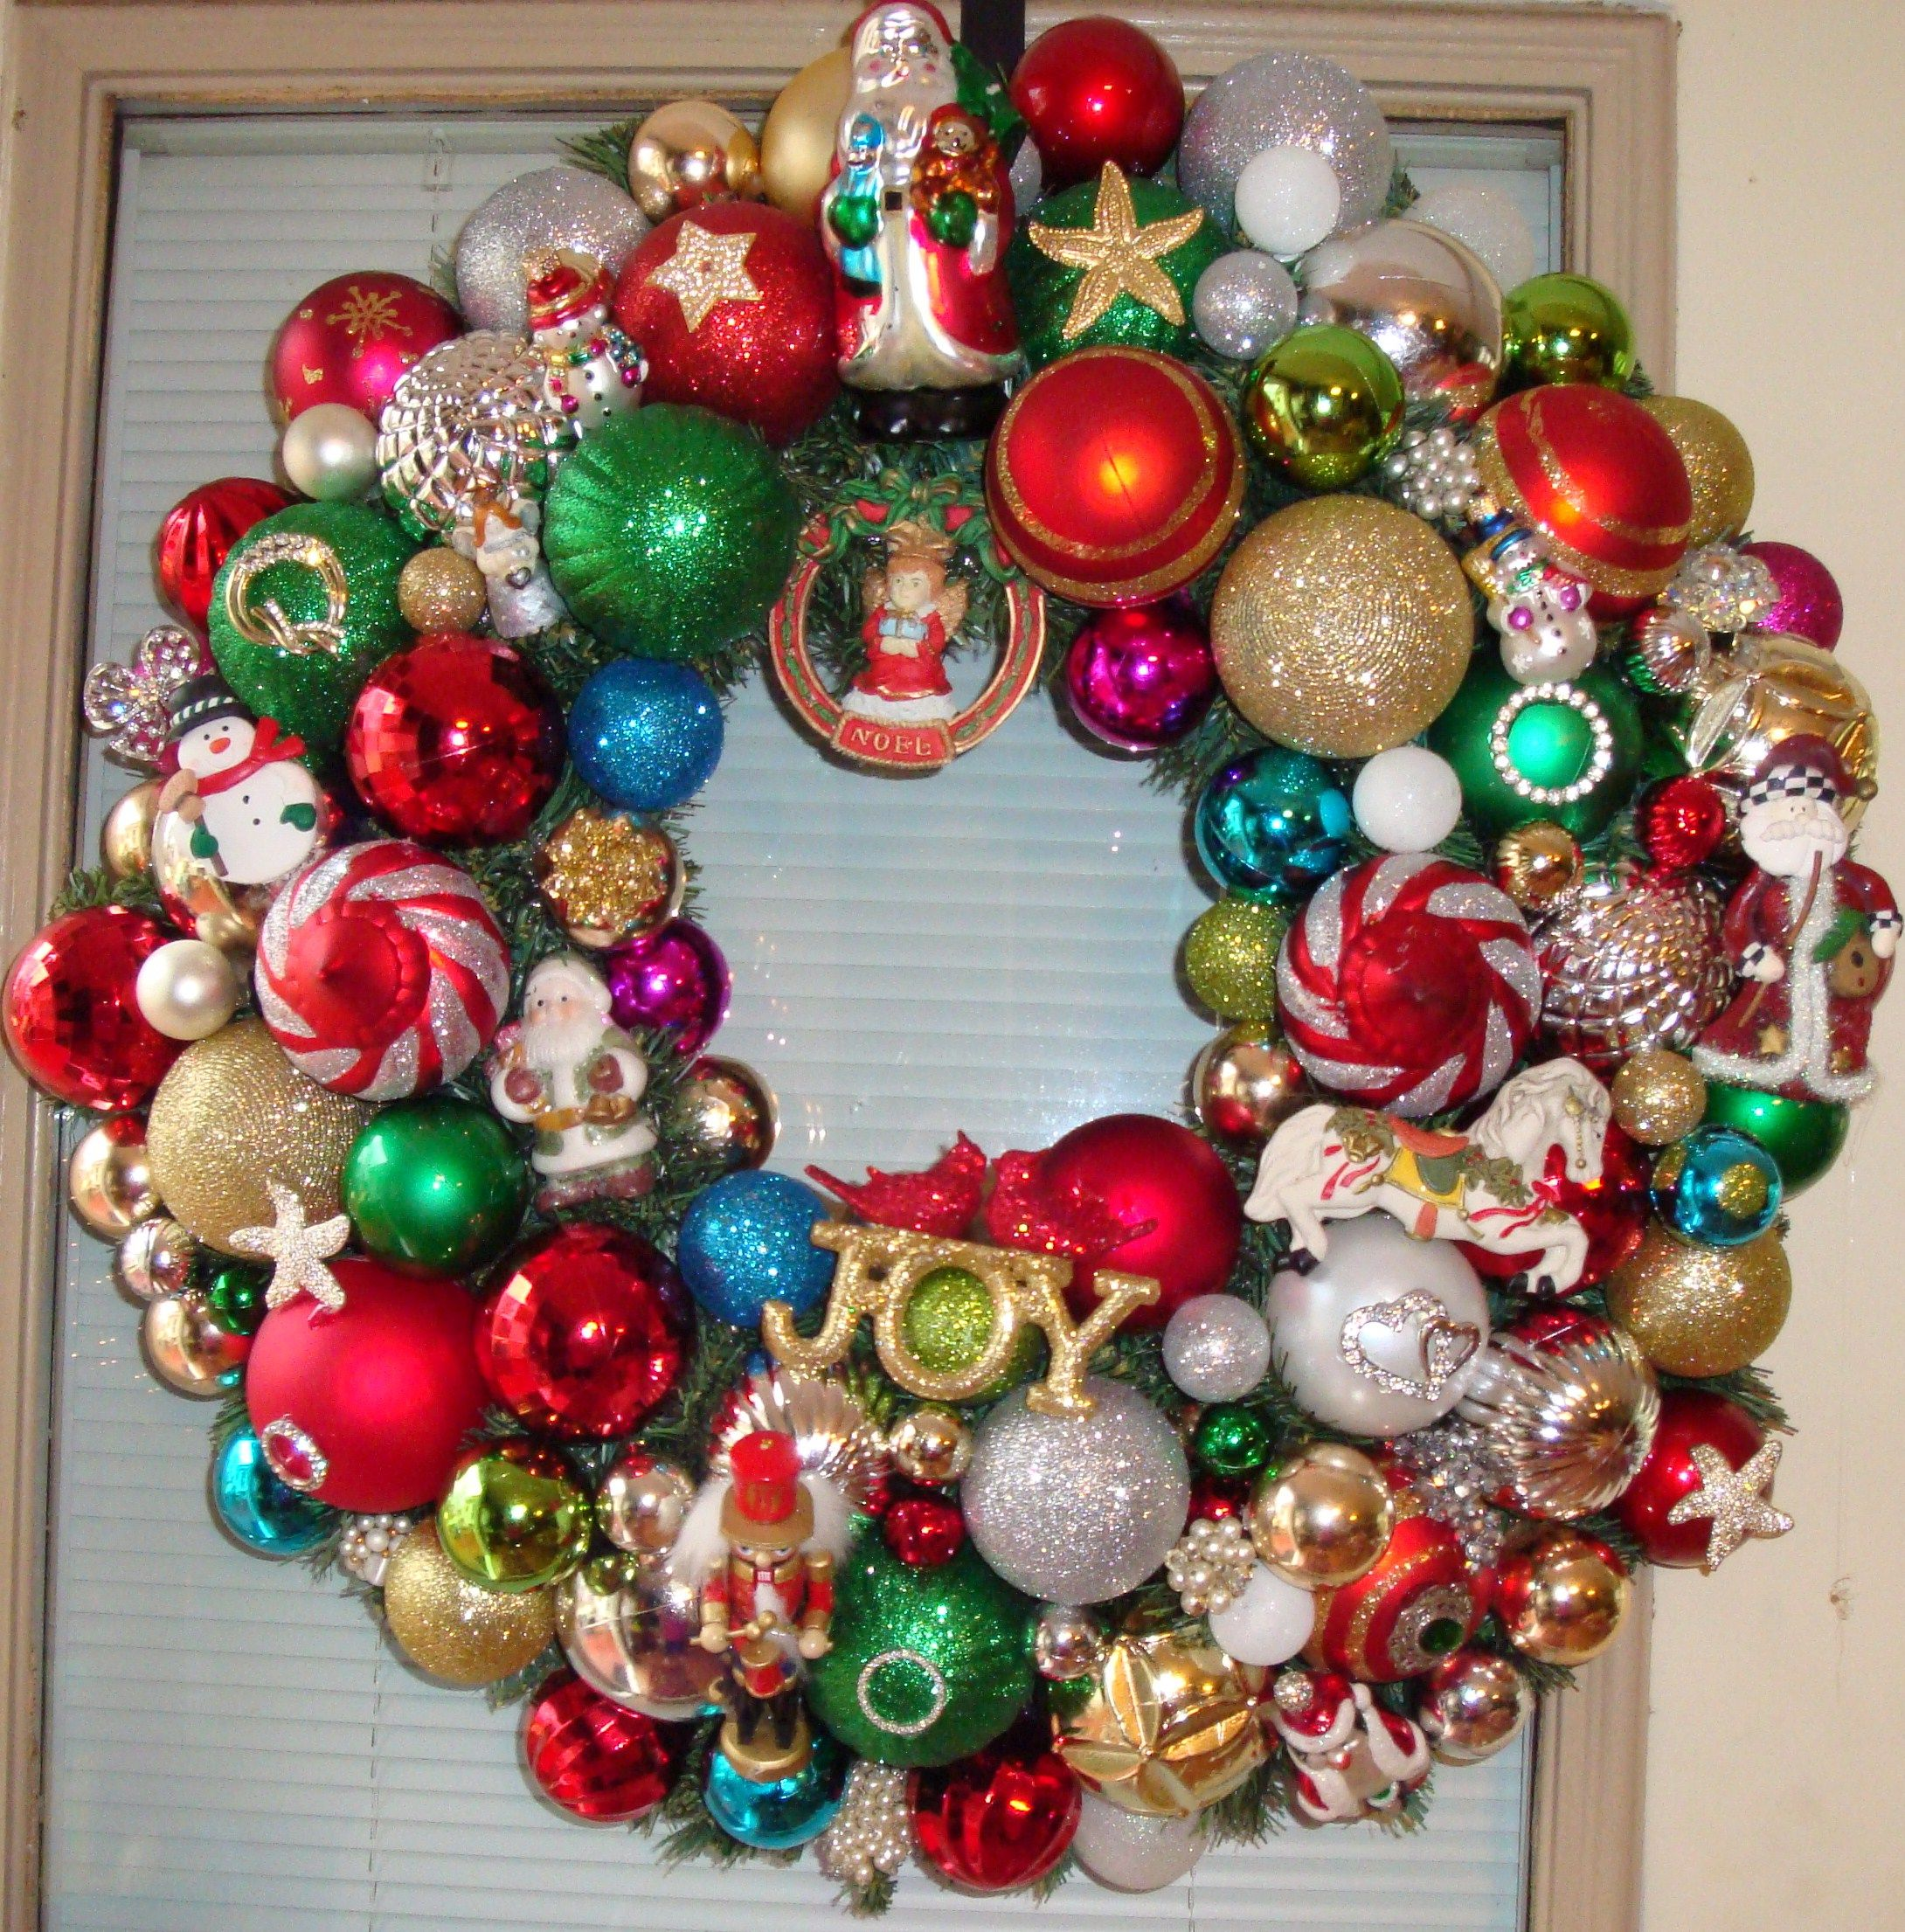 Christmas wreath made from old Christmas ornaments and misc. items ...